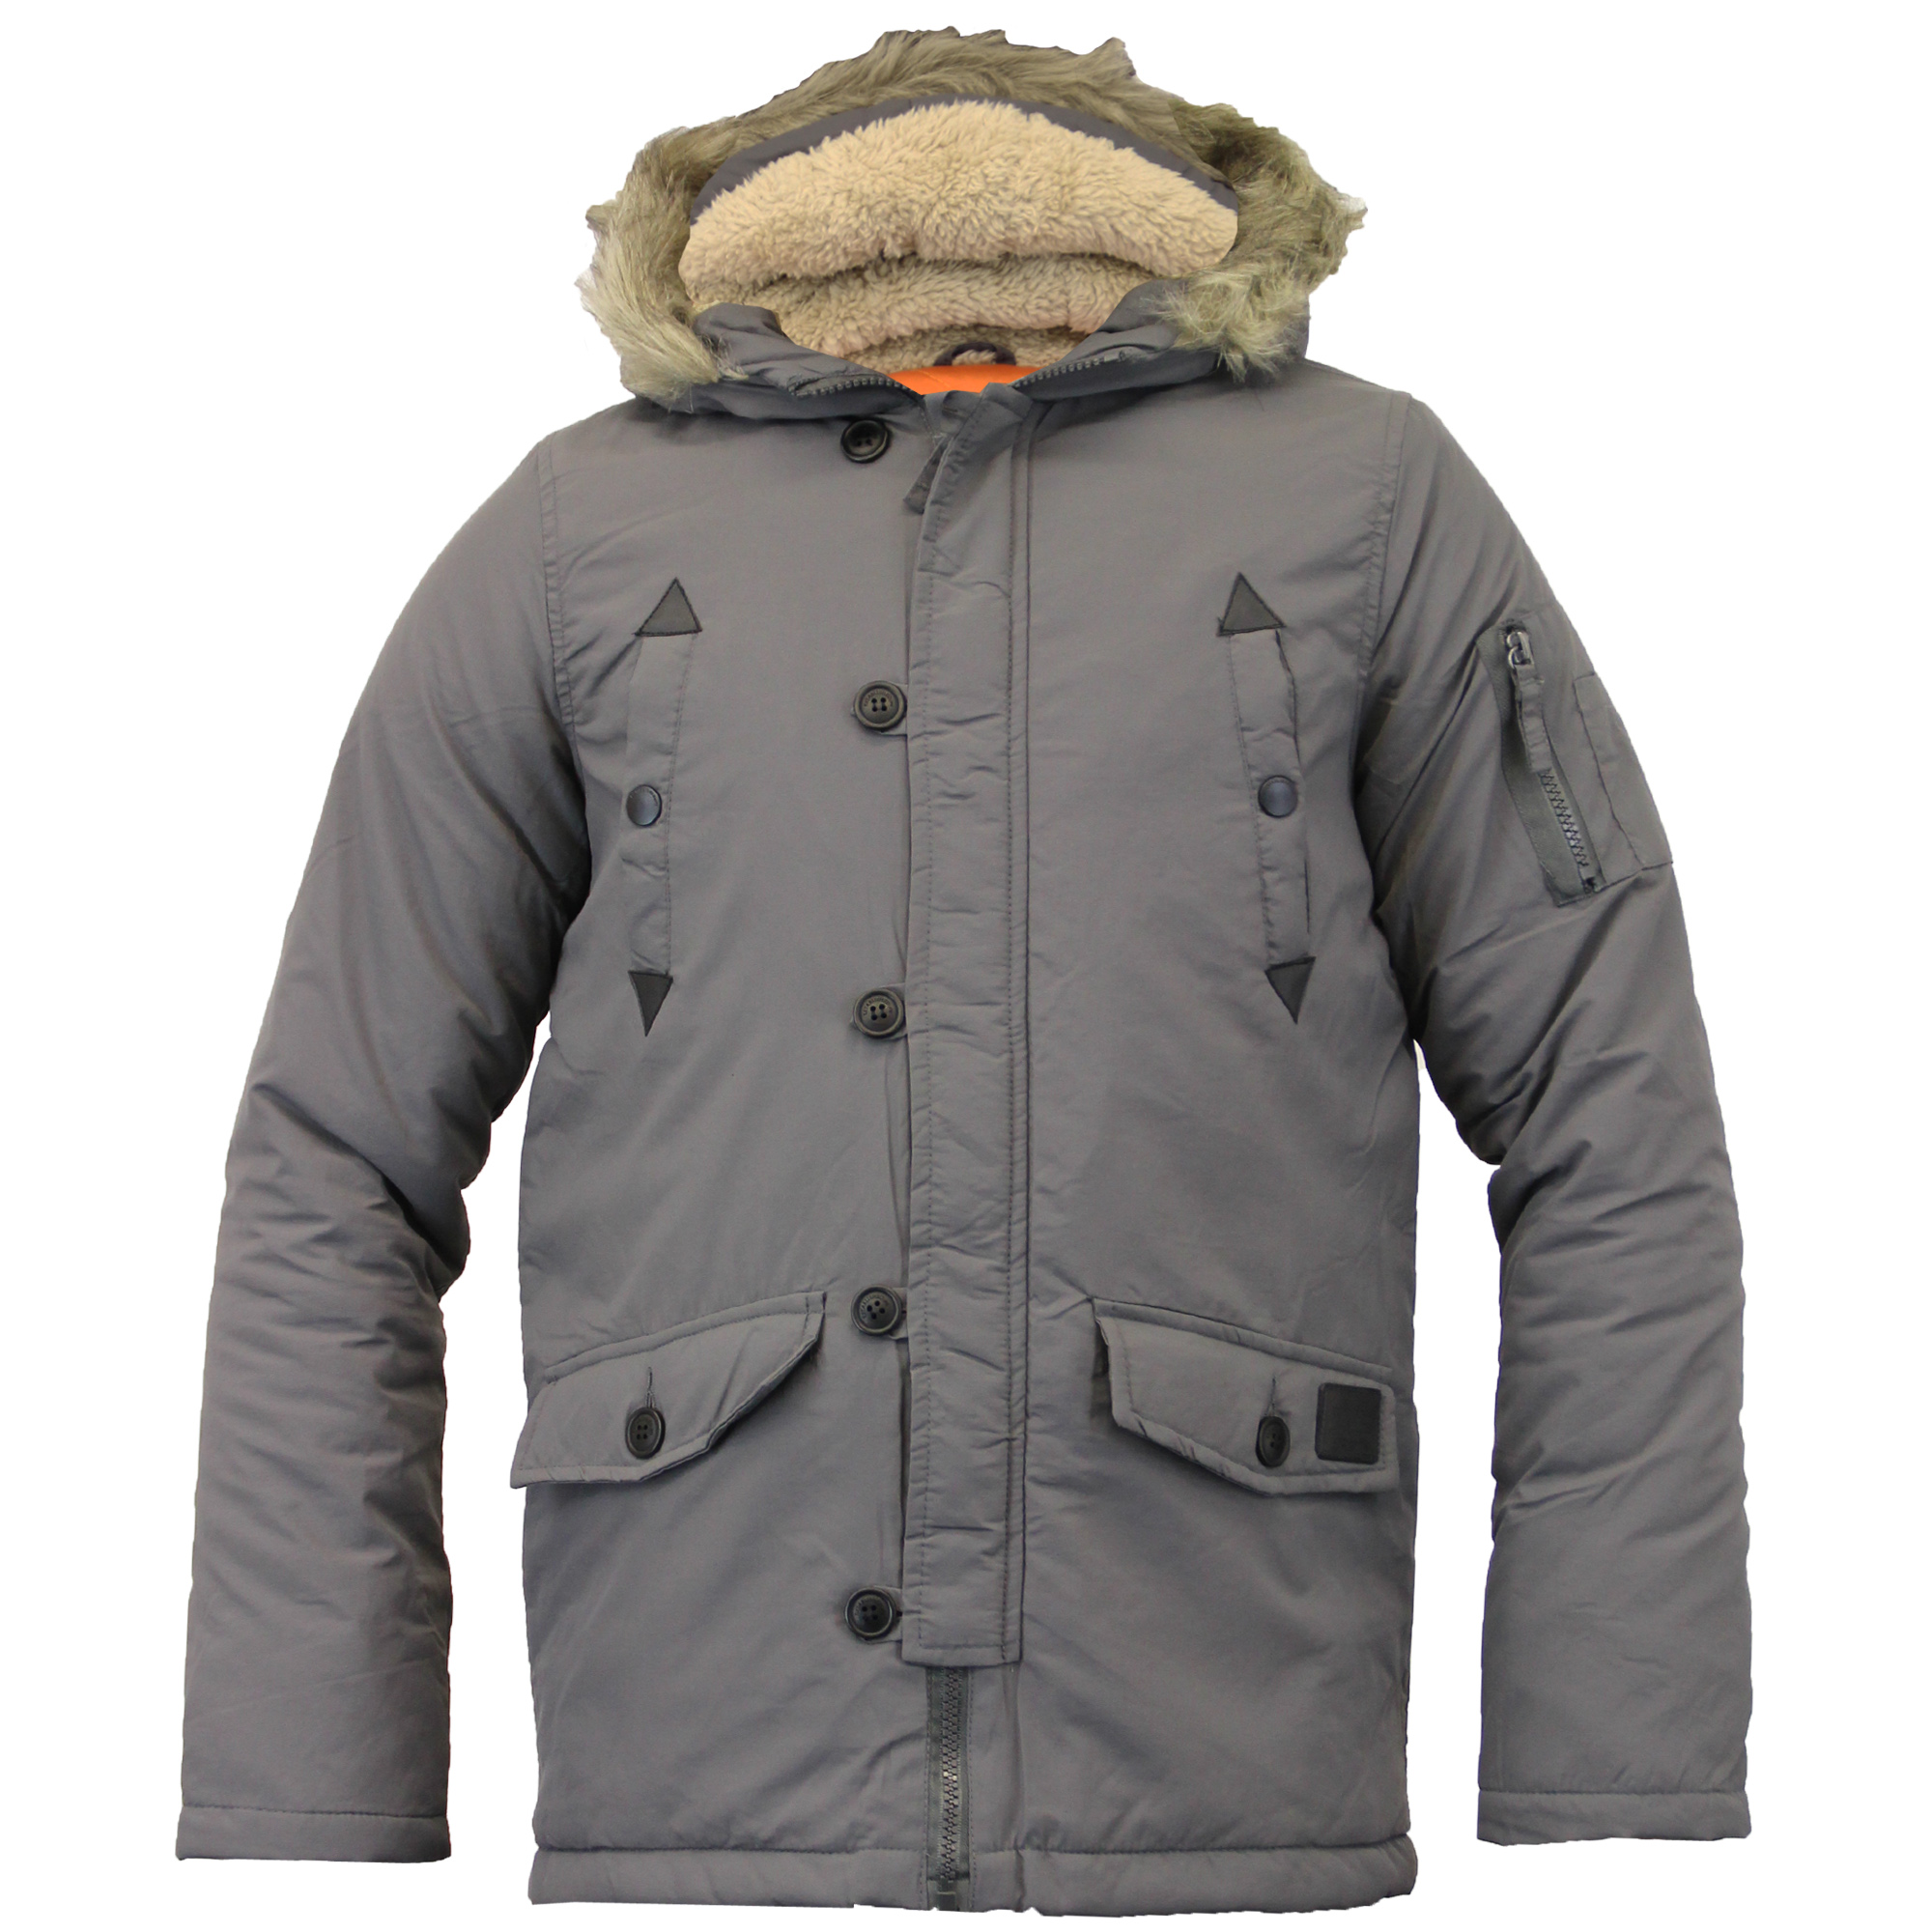 He will be ready for all sorts of outdoor fun with our collection of boys' coats and jackets; choose from gilets and waterproofs to keep them warm and dry, as well as on-trend bombers and blazers.